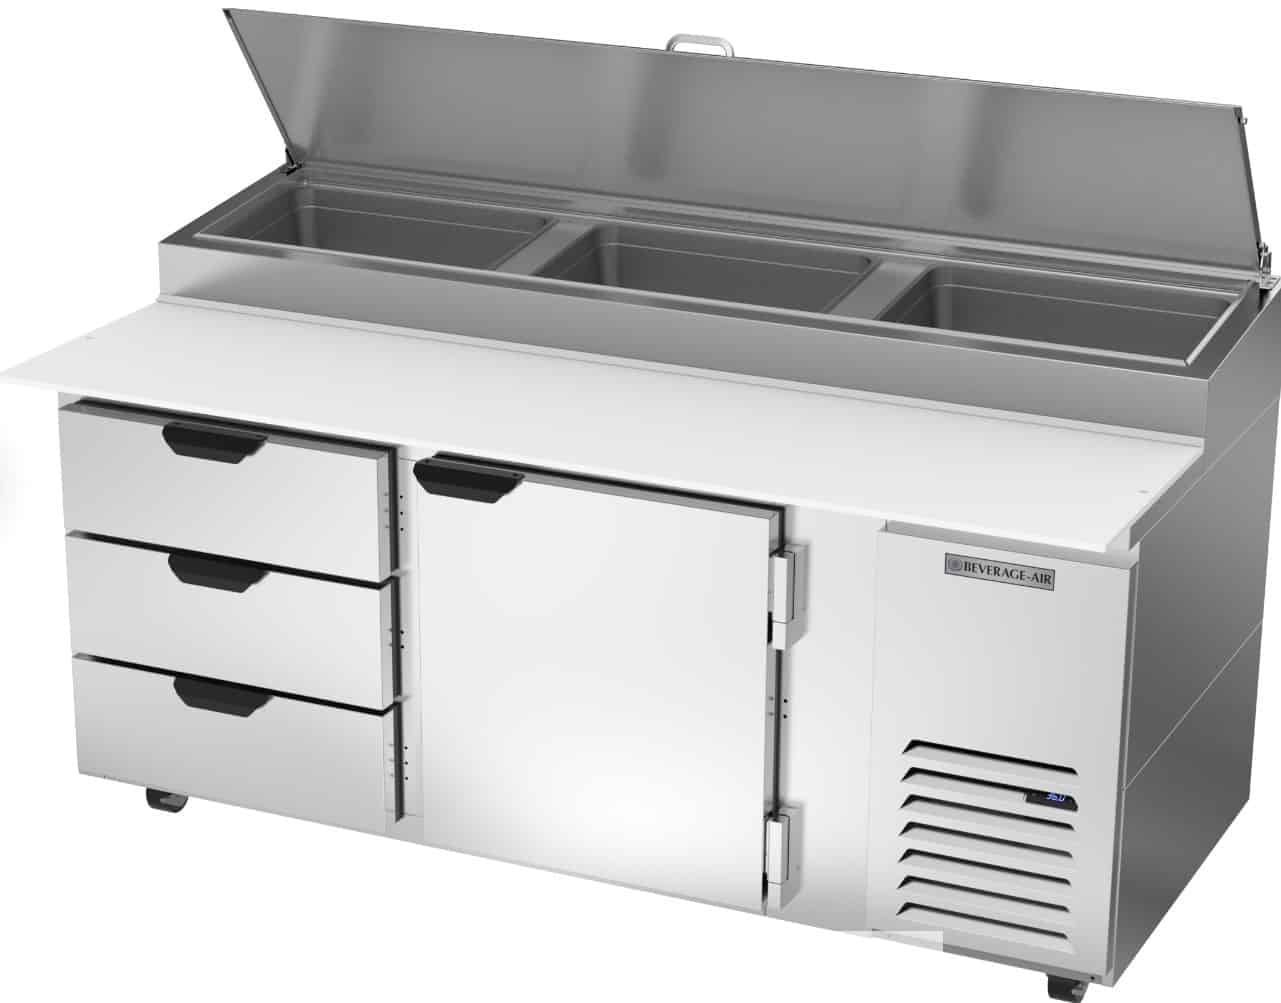 Beverage-Air Refrigerated Pizza Prep Table